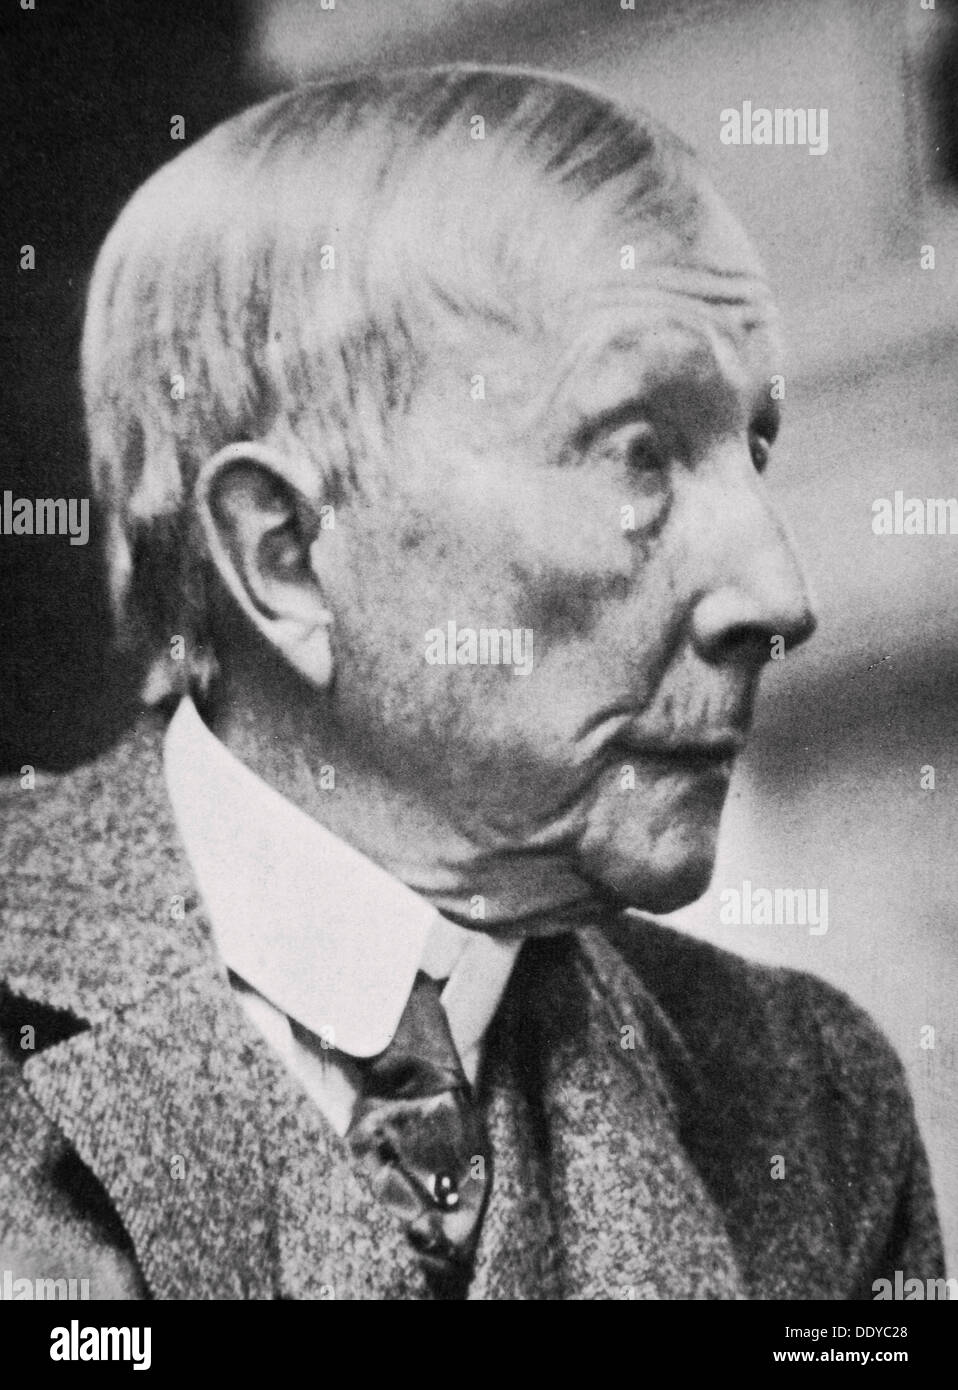 John D Rockefeller, American tycoon and philanthropist, in his later years, 20th century. Artist: Unknown - Stock Image